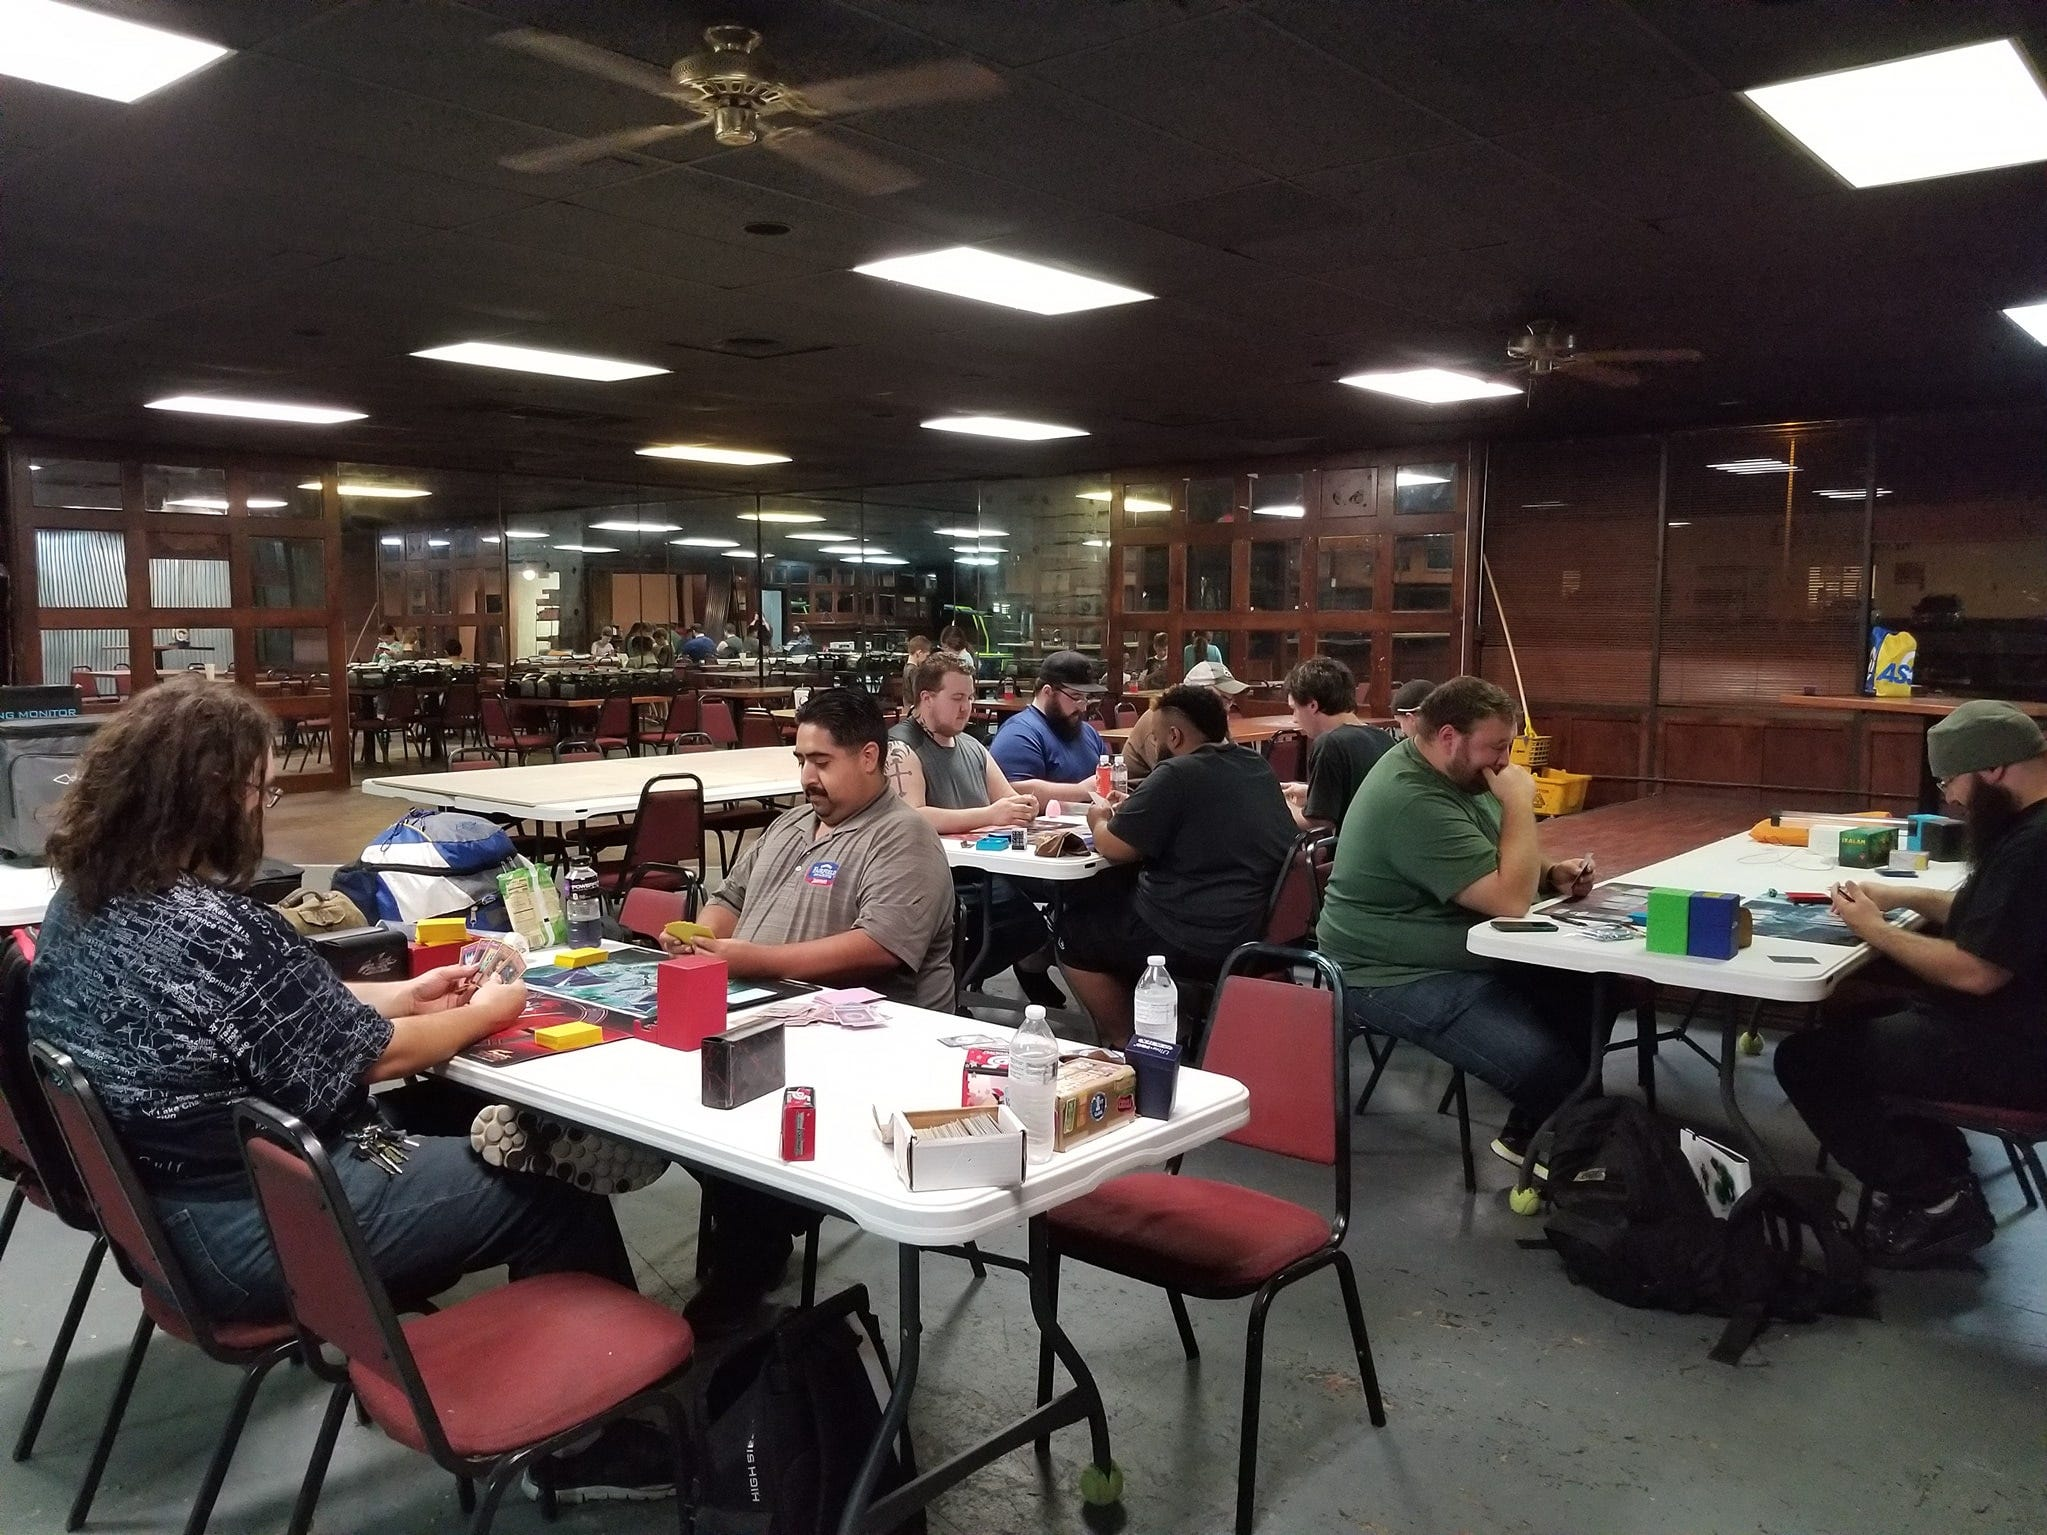 People playing Magic the Gathering and Yu-Gi-Oh at Phat Catz Gaming, 2019 N Bryant Blvd.